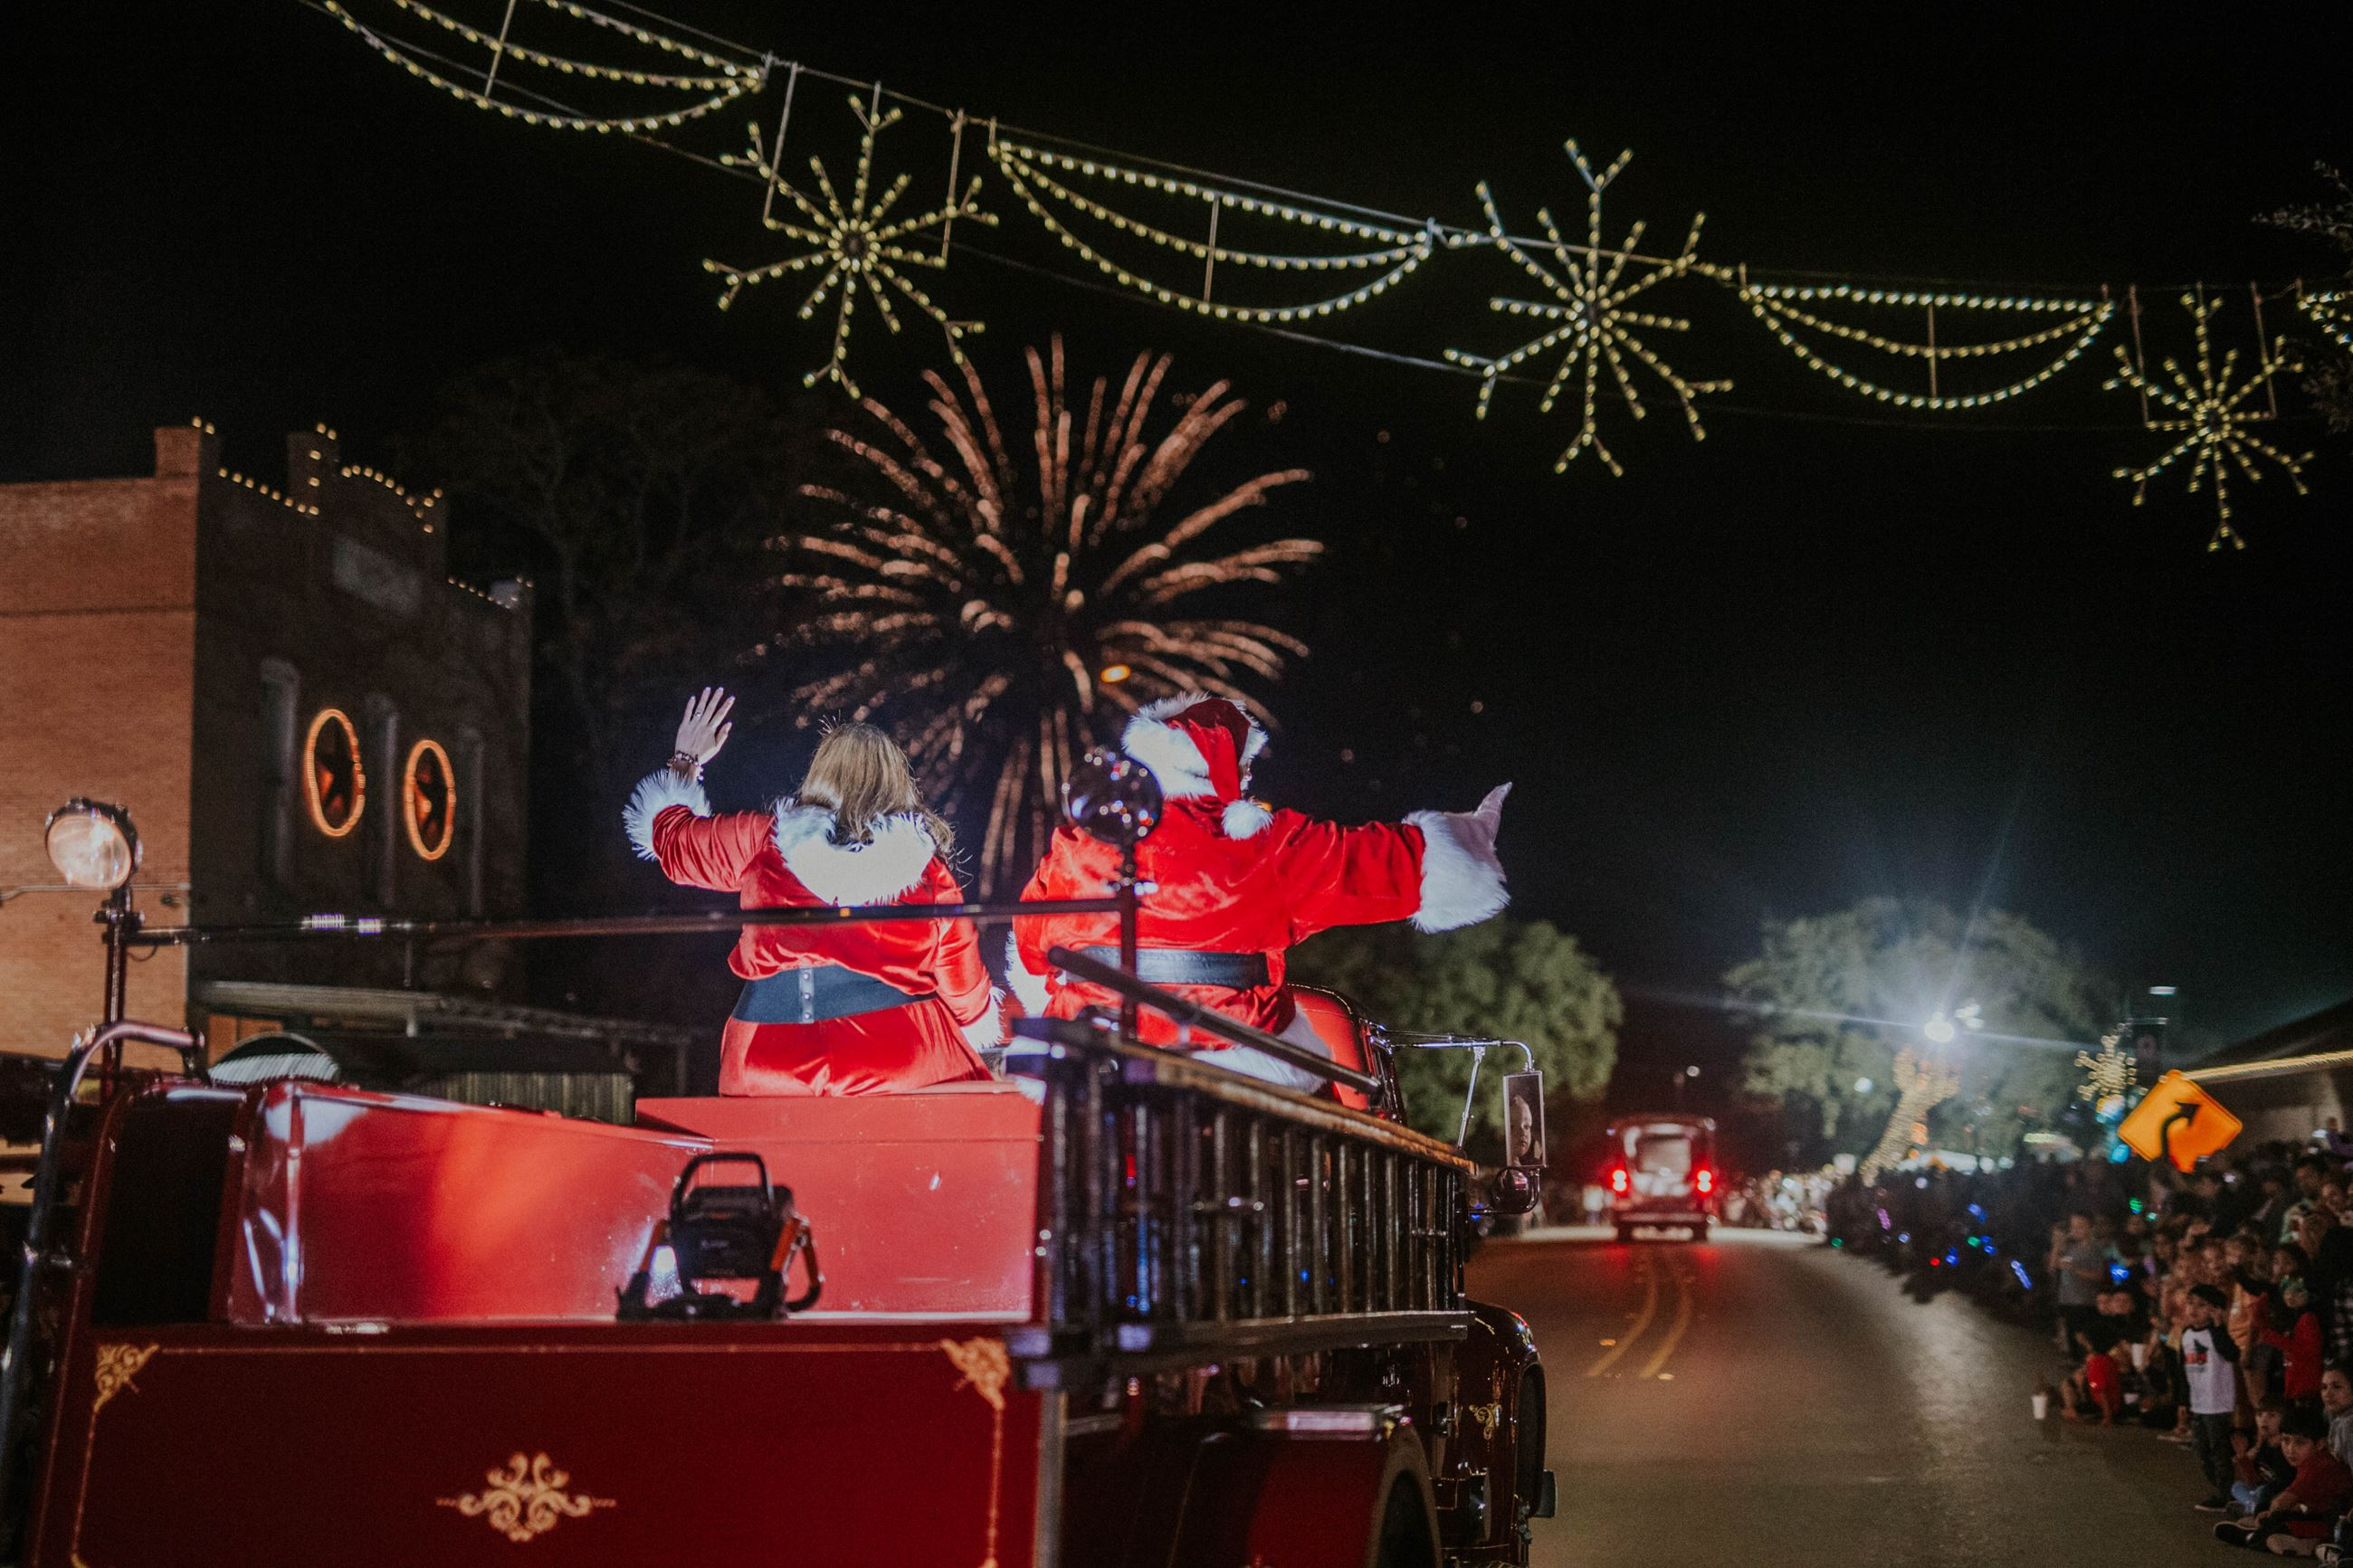 Santa and Mrs. Claus riding on a vintage fire truck during the Budafest parade with fireworks behind